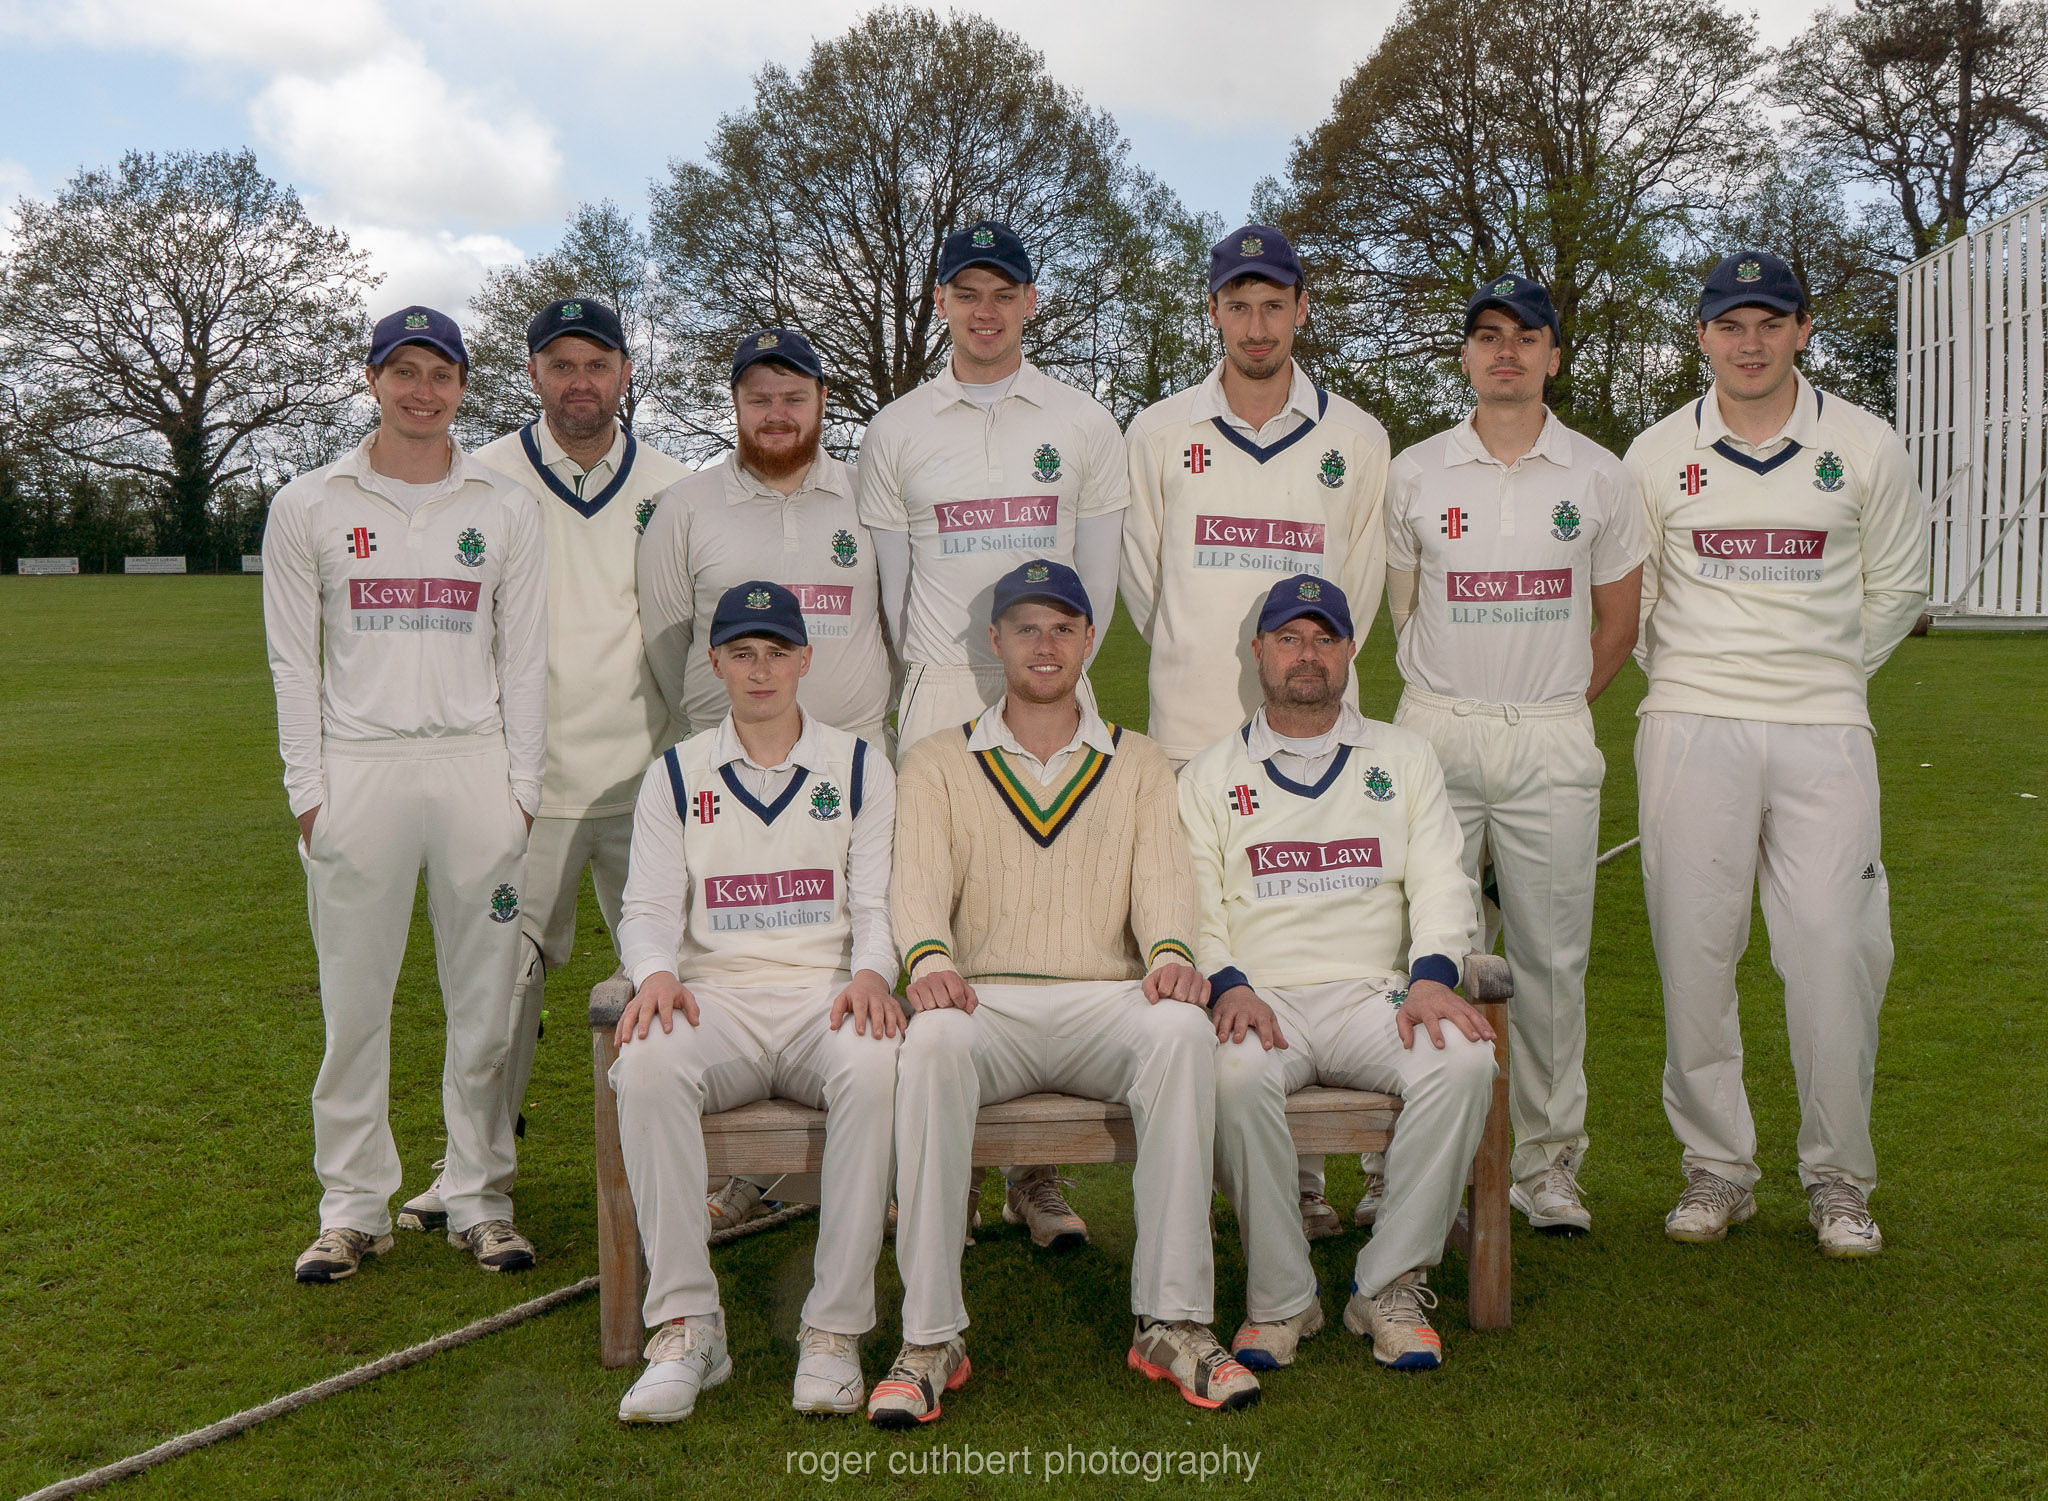 Halstead Cricket Club's first team. Picture: Roger Cuthbert LRPS